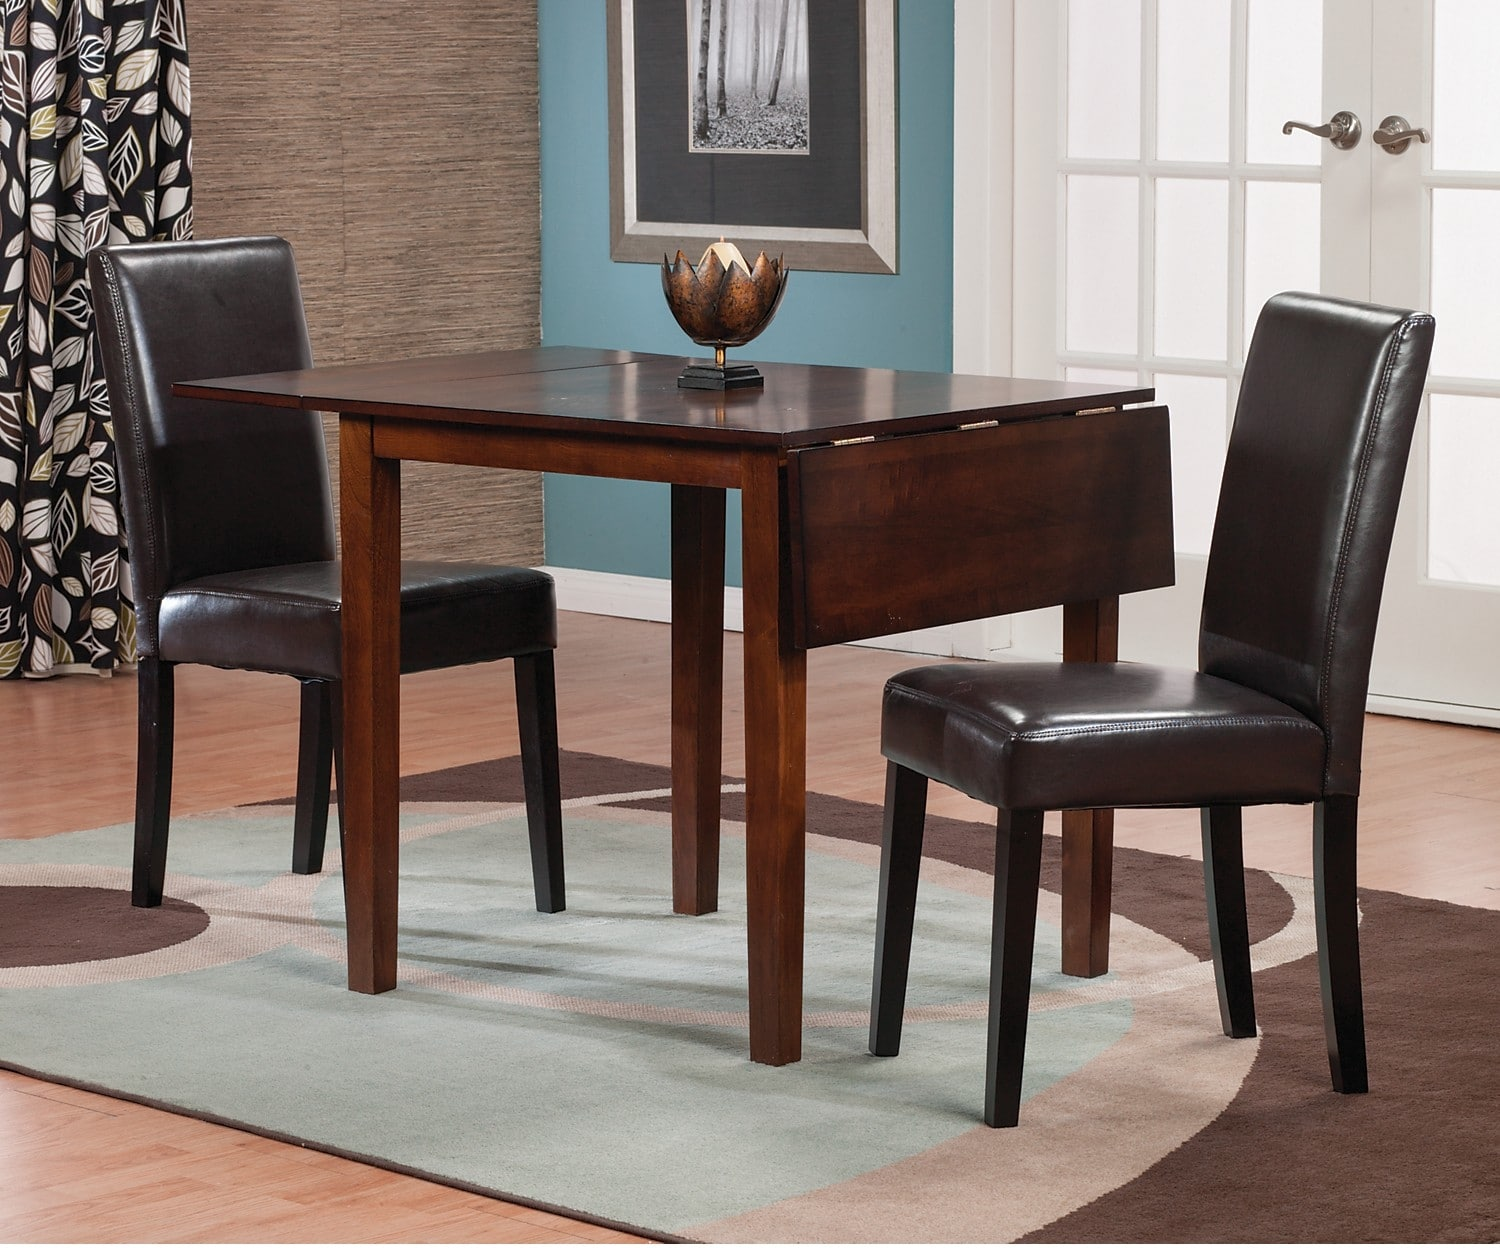 Dining Room Furniture - Adara 3-Piece Square Dining Package with Brown Accent Chairs